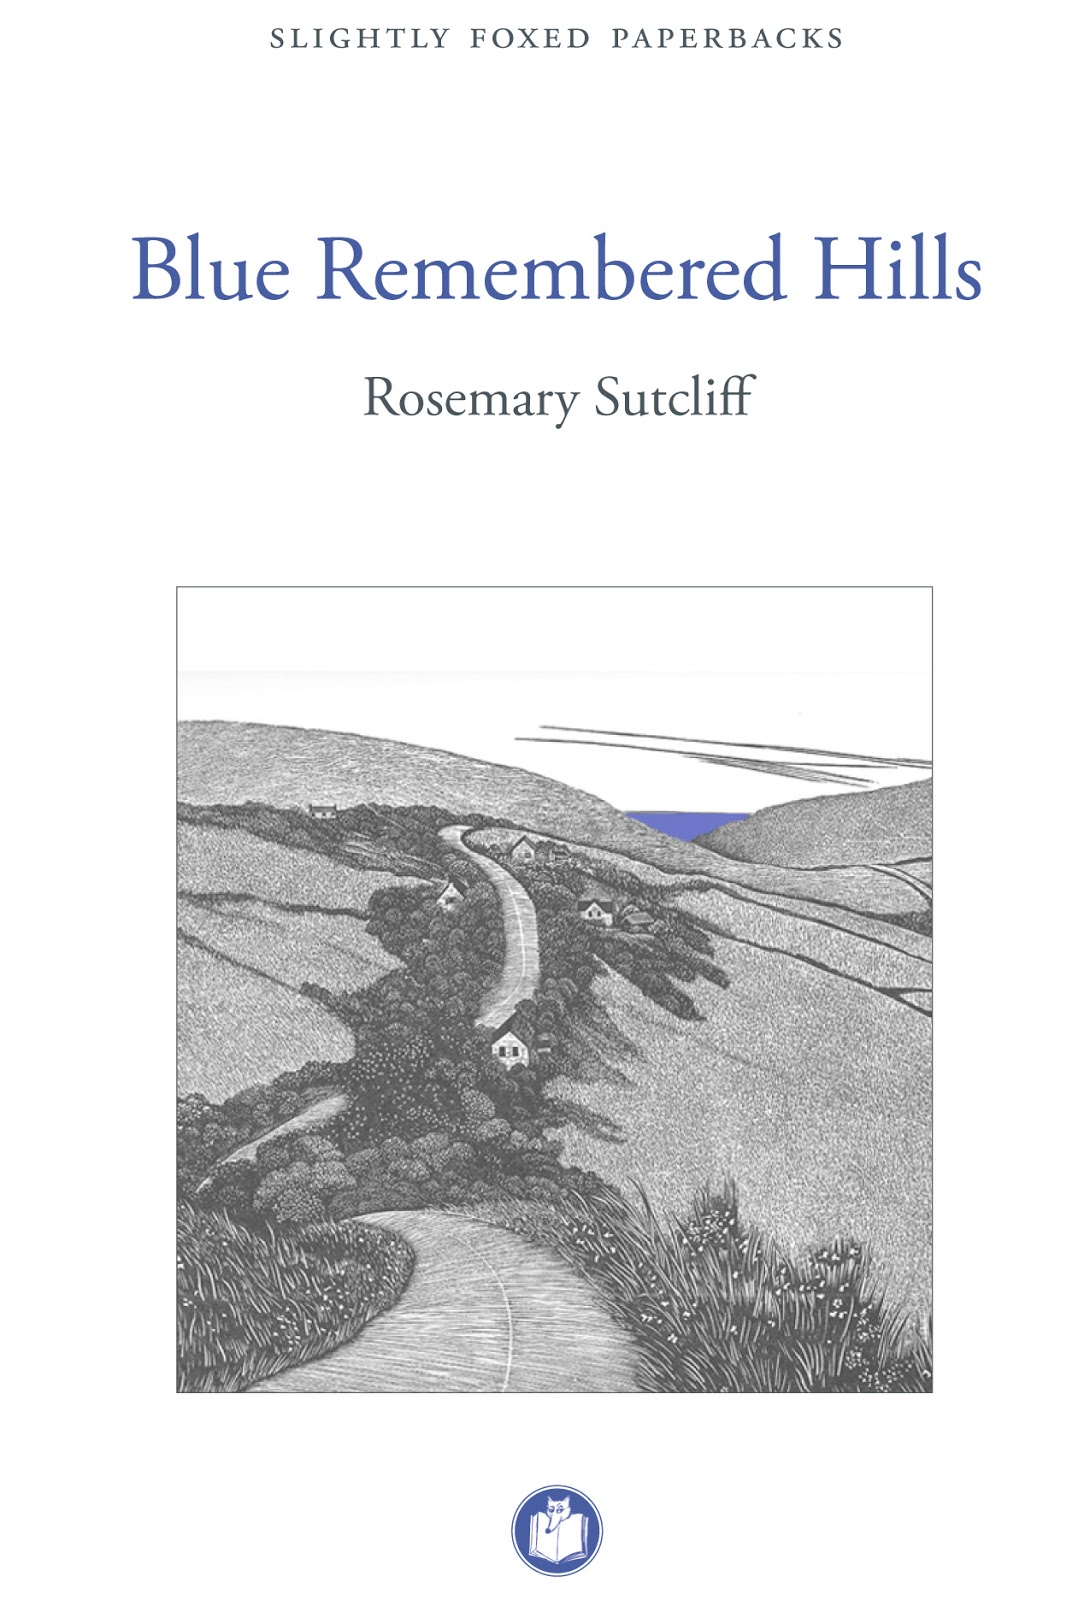 blue remembered hills 2 essay Blue remembered hills bridleway route 2 - llanfair waterdine to upper duffryn  (shropshire's  click to show 2 more publications, badges and certificates.